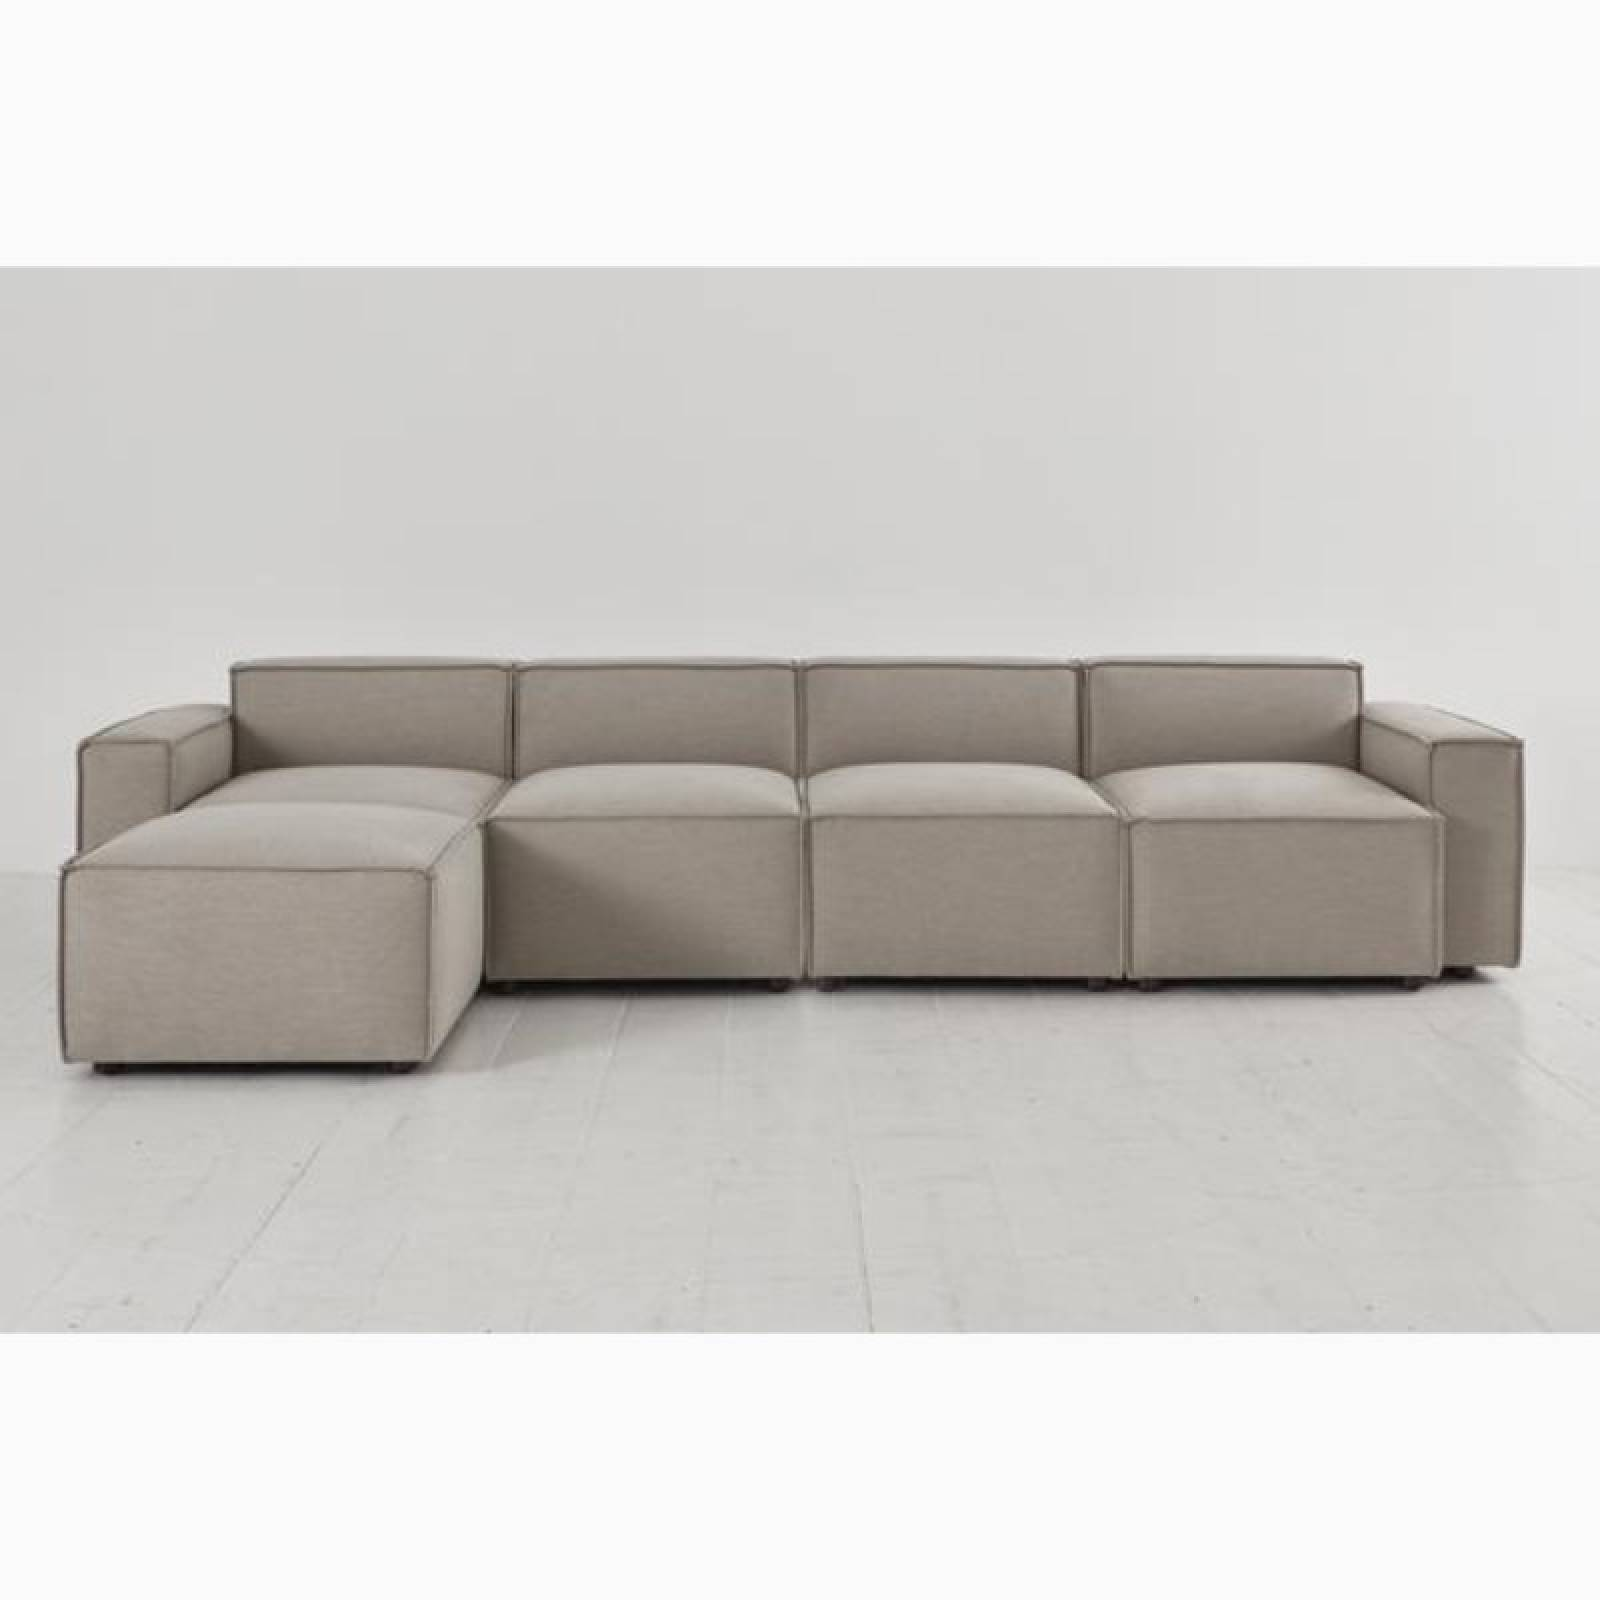 Swyft Model 03 - 4 Seater Sofa Left Chaise - Linen Pumice